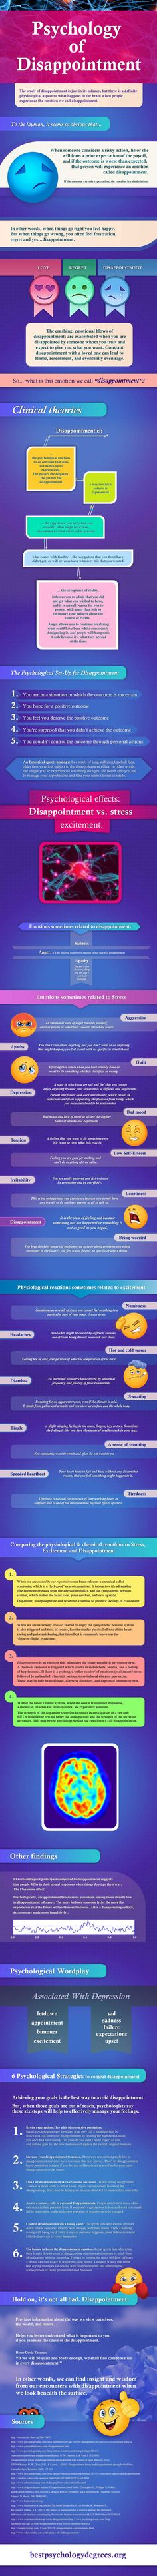 Psychology of Disappointment